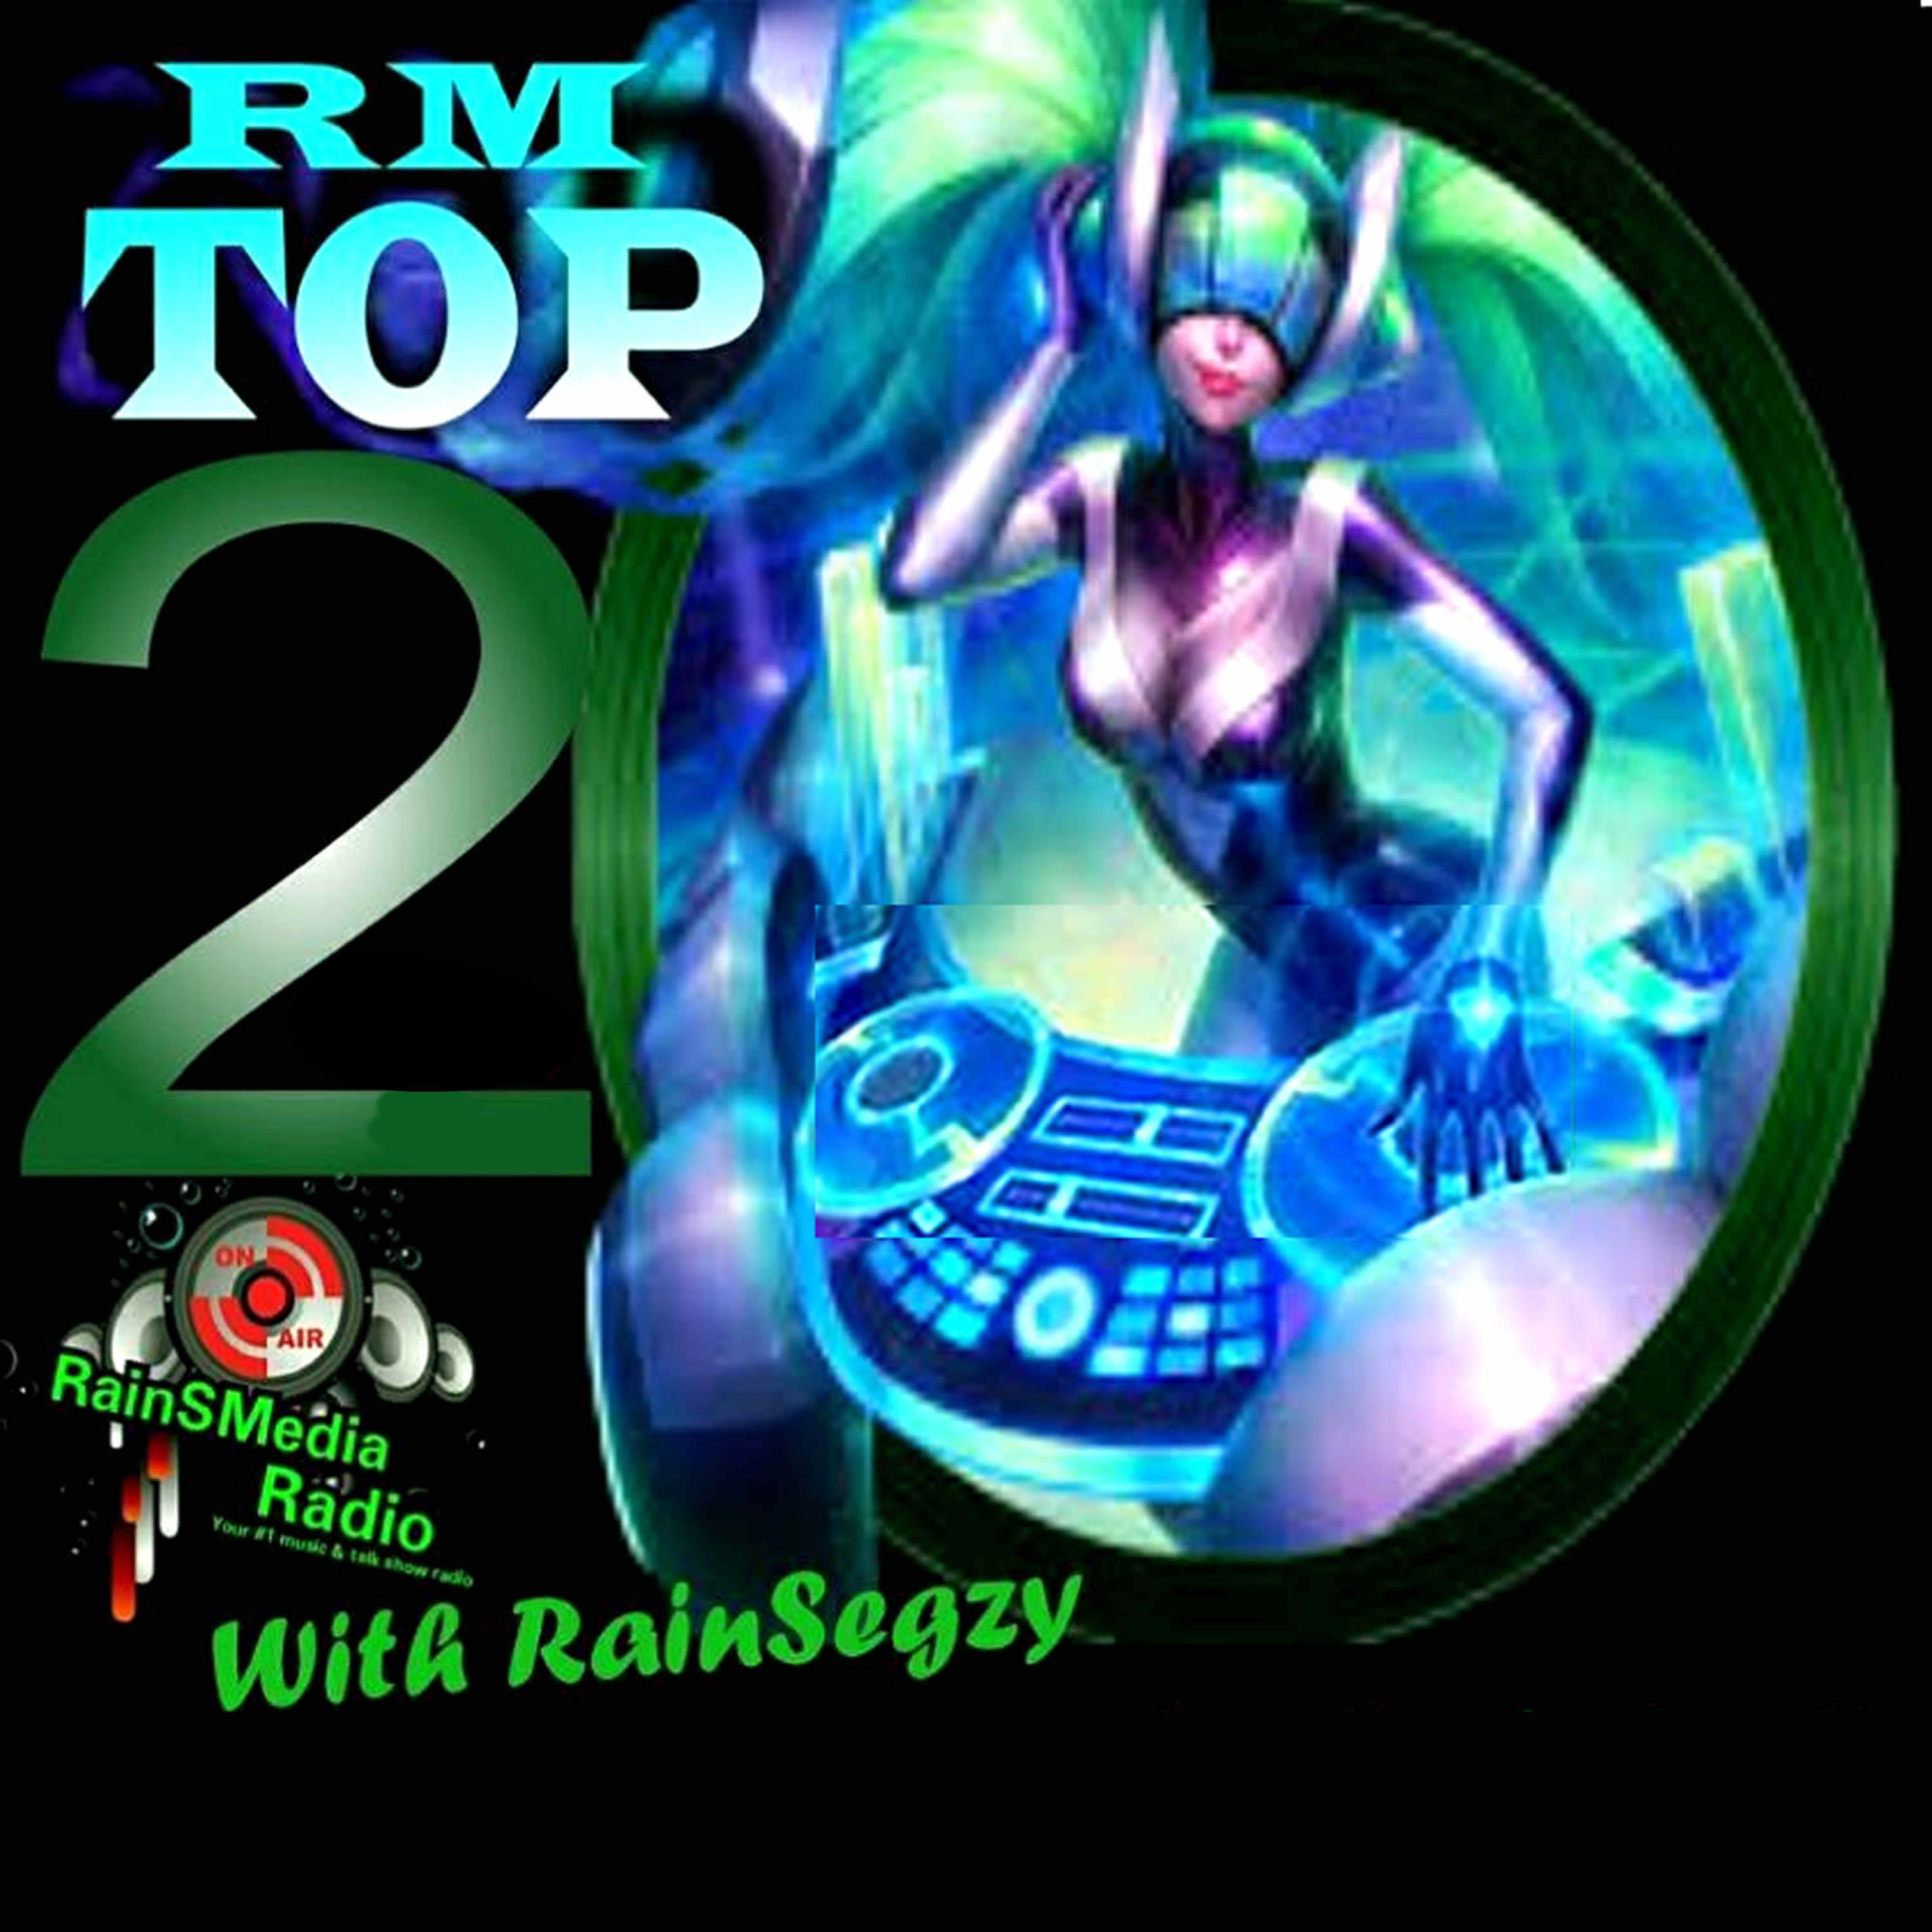 RMTop20 With RainSegzy Image